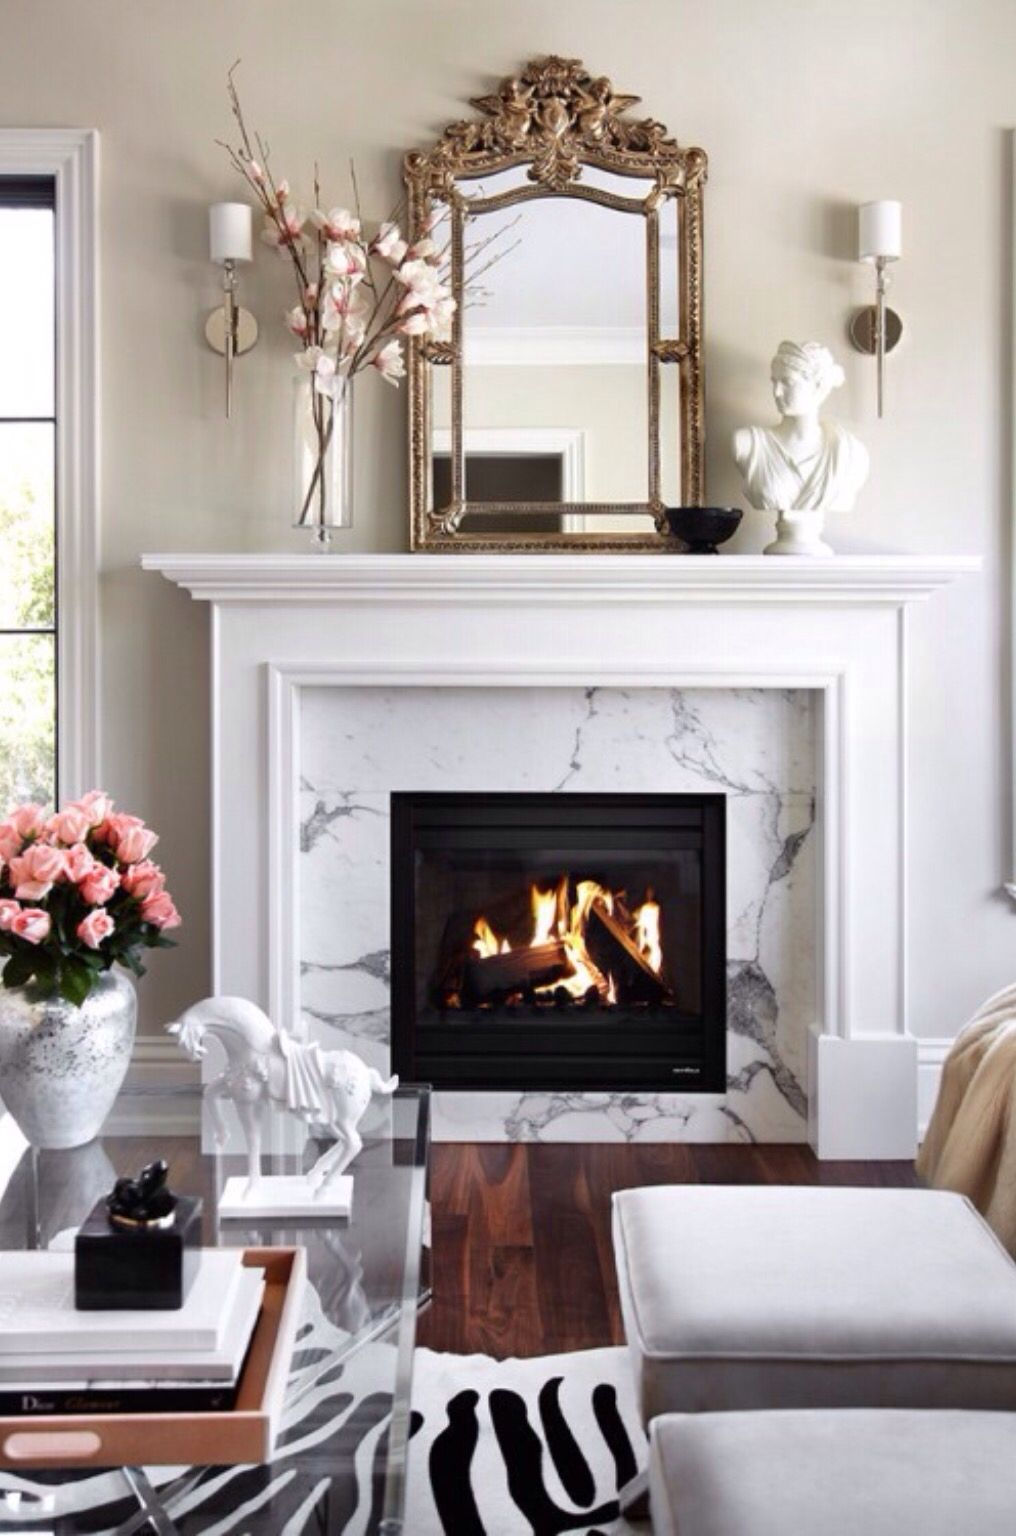 7 Living Room Design Ideas to Make Your Space Look Luxe | Pinterest ...